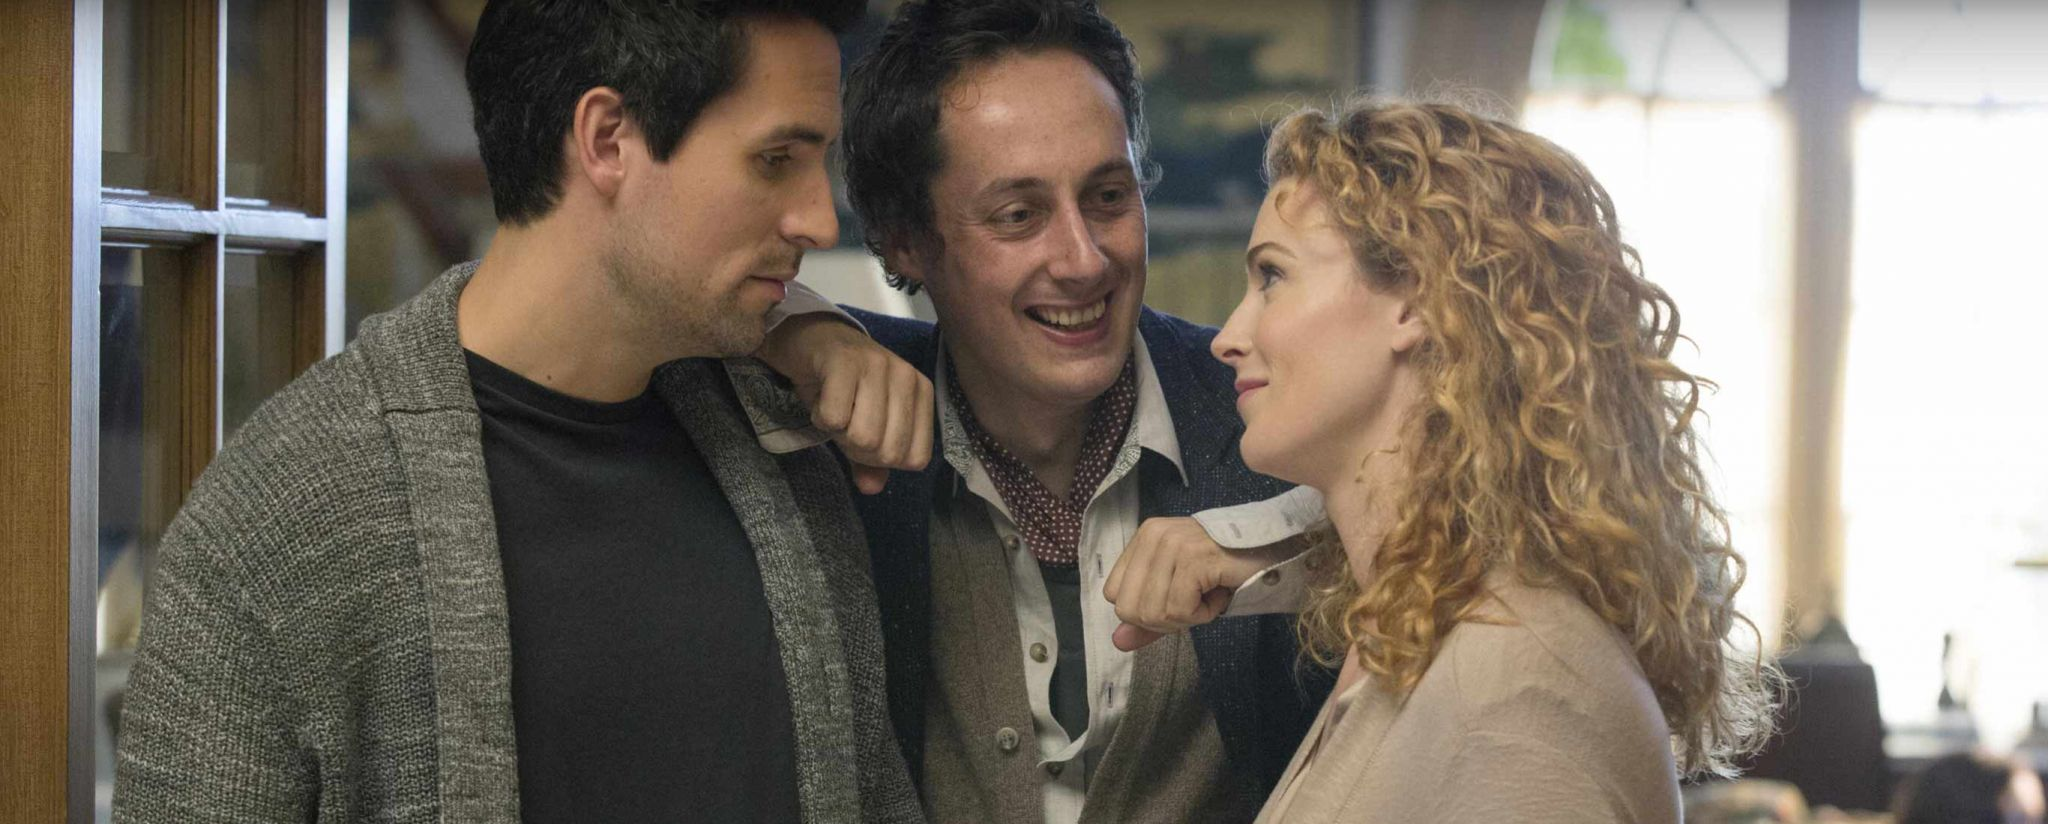 'The Leisure Class' Review: 'Project Greenlight' Movie ...